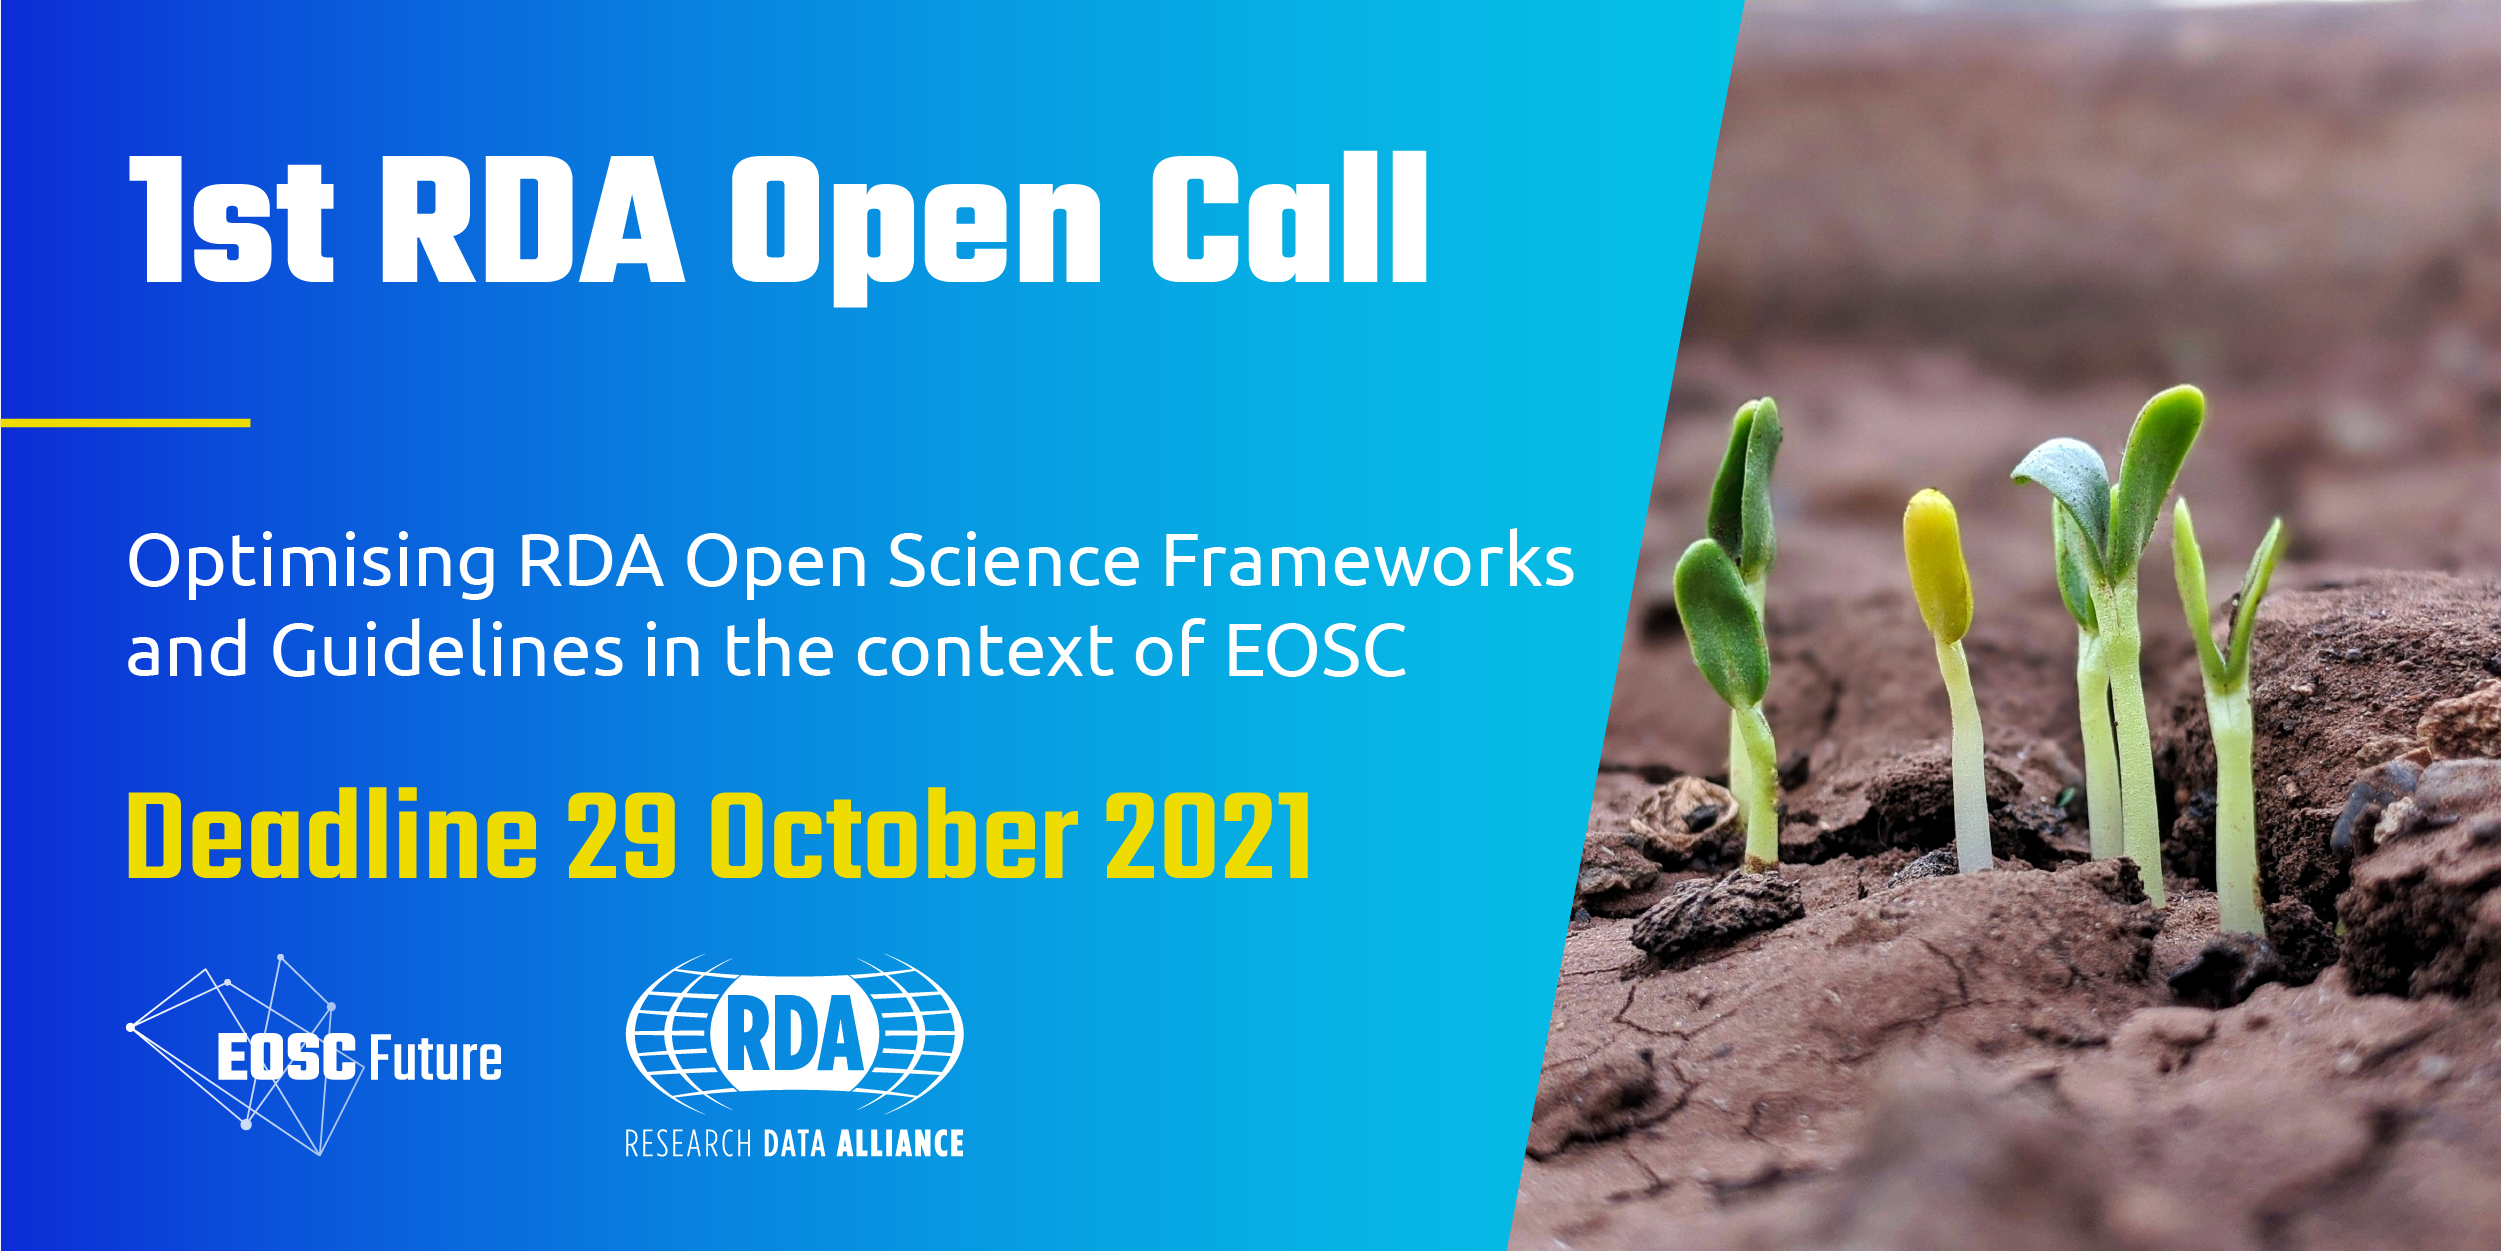 Research Data Alliance (RDA) grants to support the European Open Science Cloud (EOSC) Informative meeting